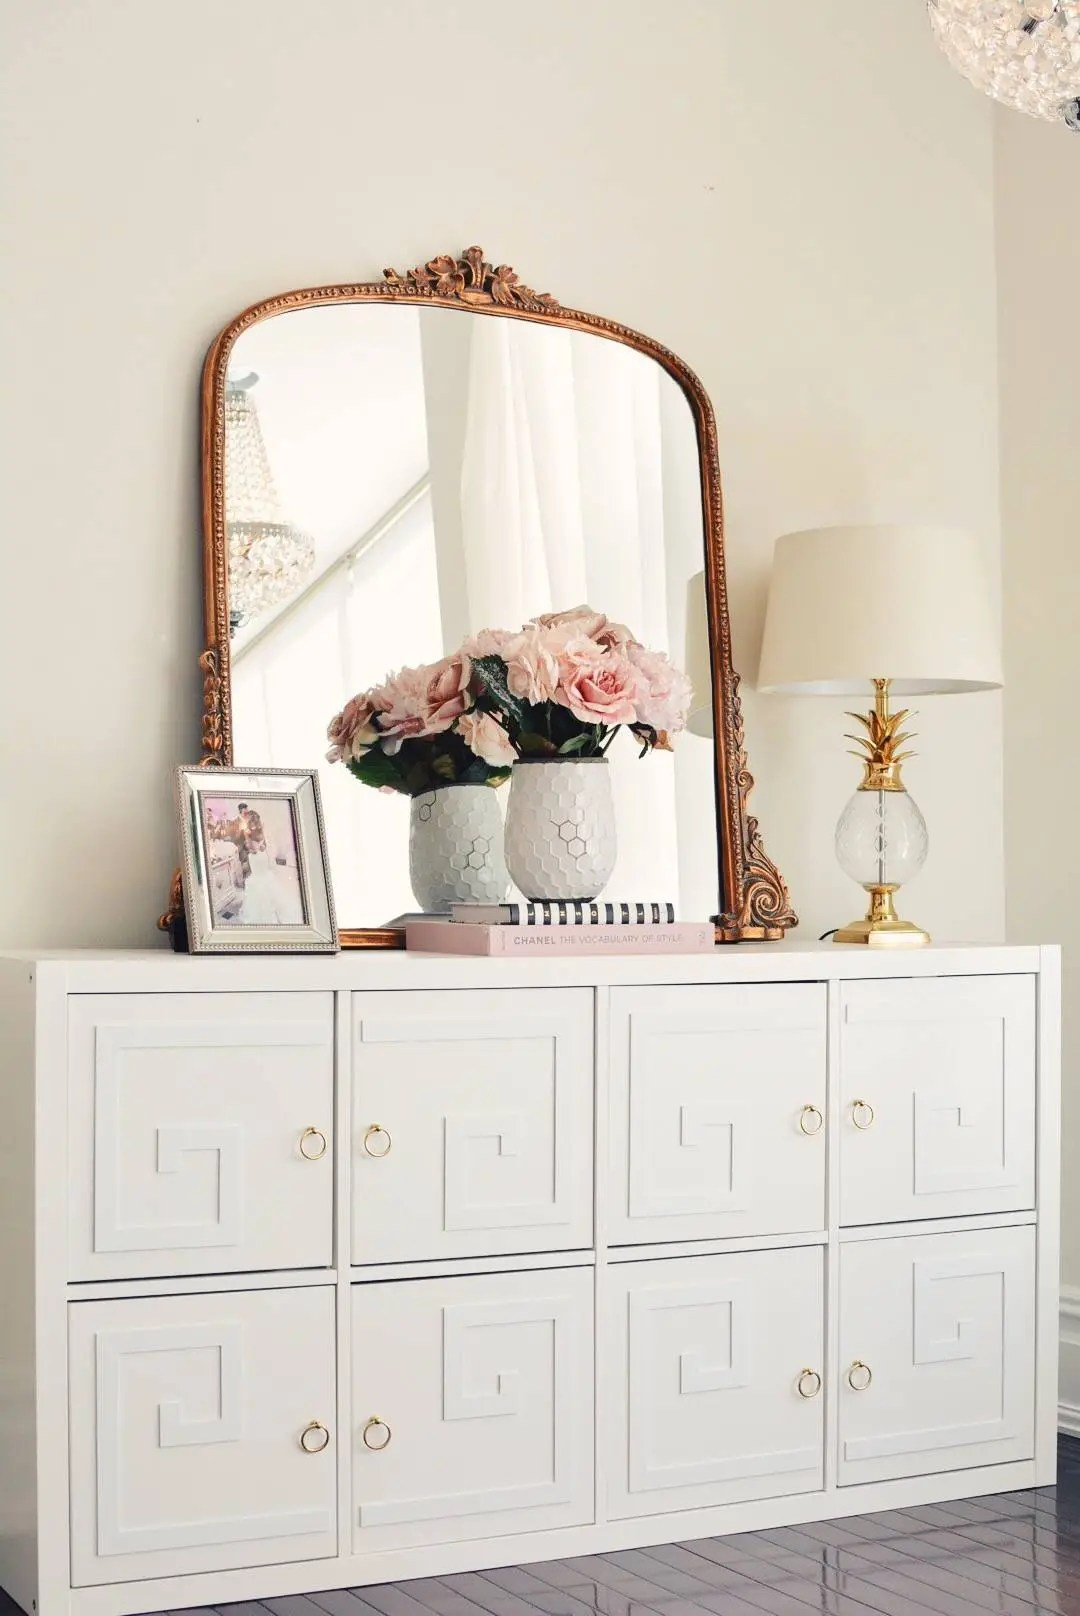 IKEA Kallax Hack to a pretty console table with overlay fronts and brass hardware. The Every Girl. #ikeahack #kallaxhack #kallax #diy #homedecor